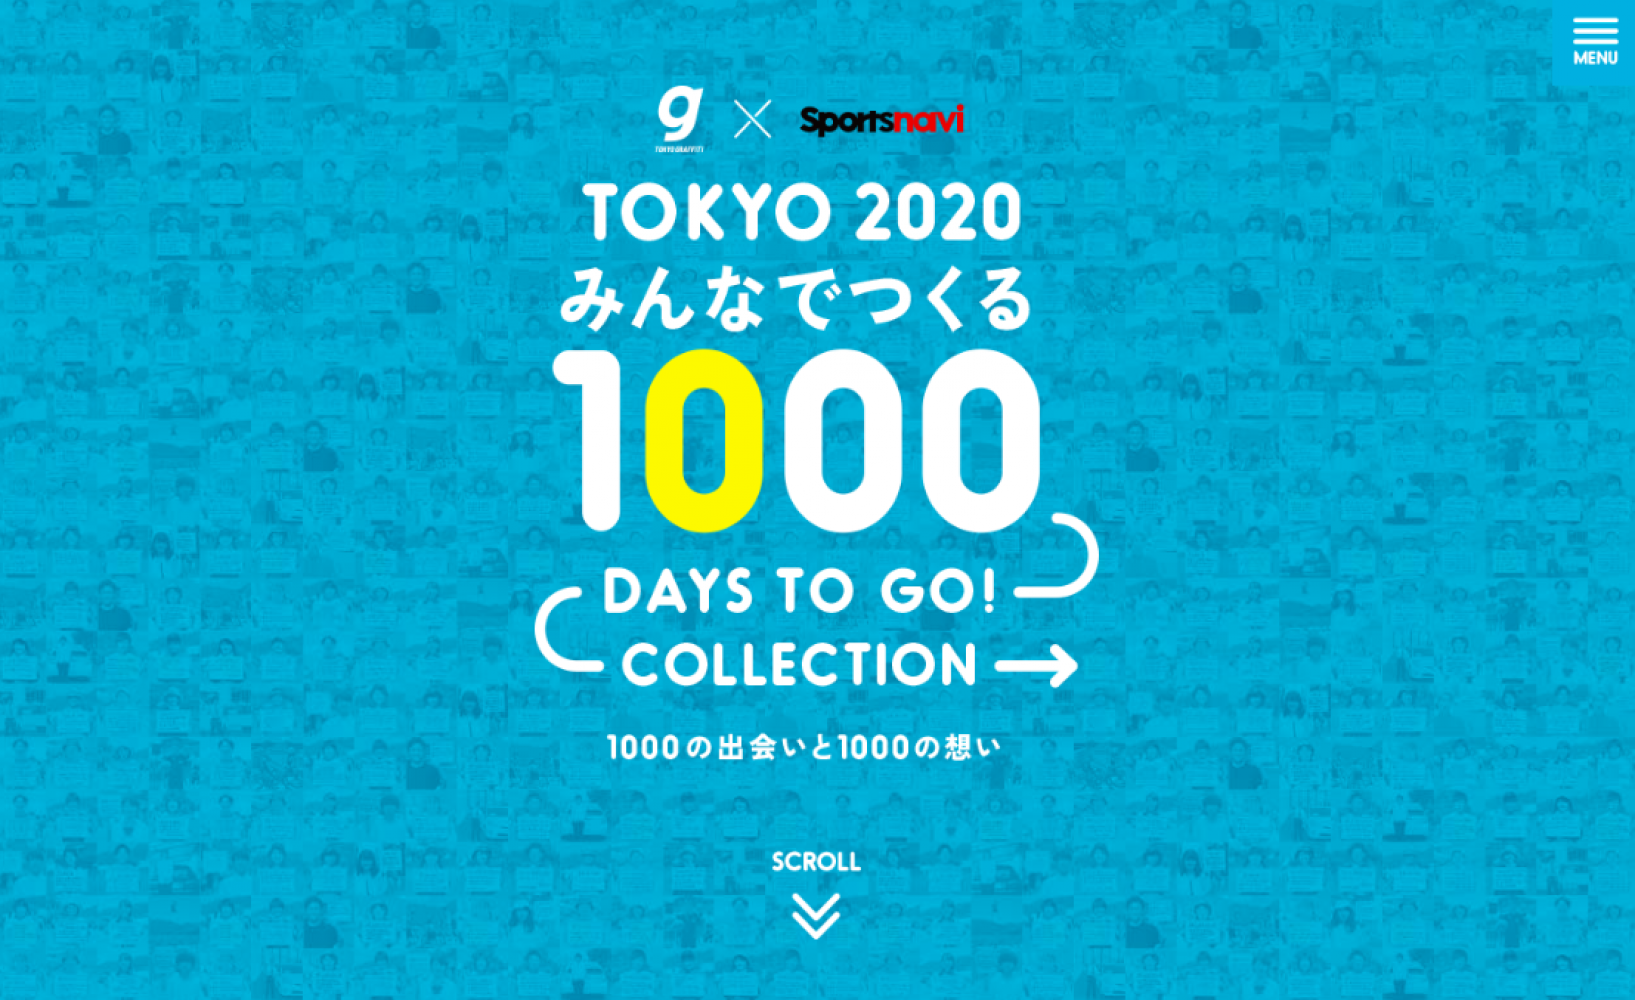 TOKYO 2020 みんなでつくる1000DAYS TO GO! COLLECTION